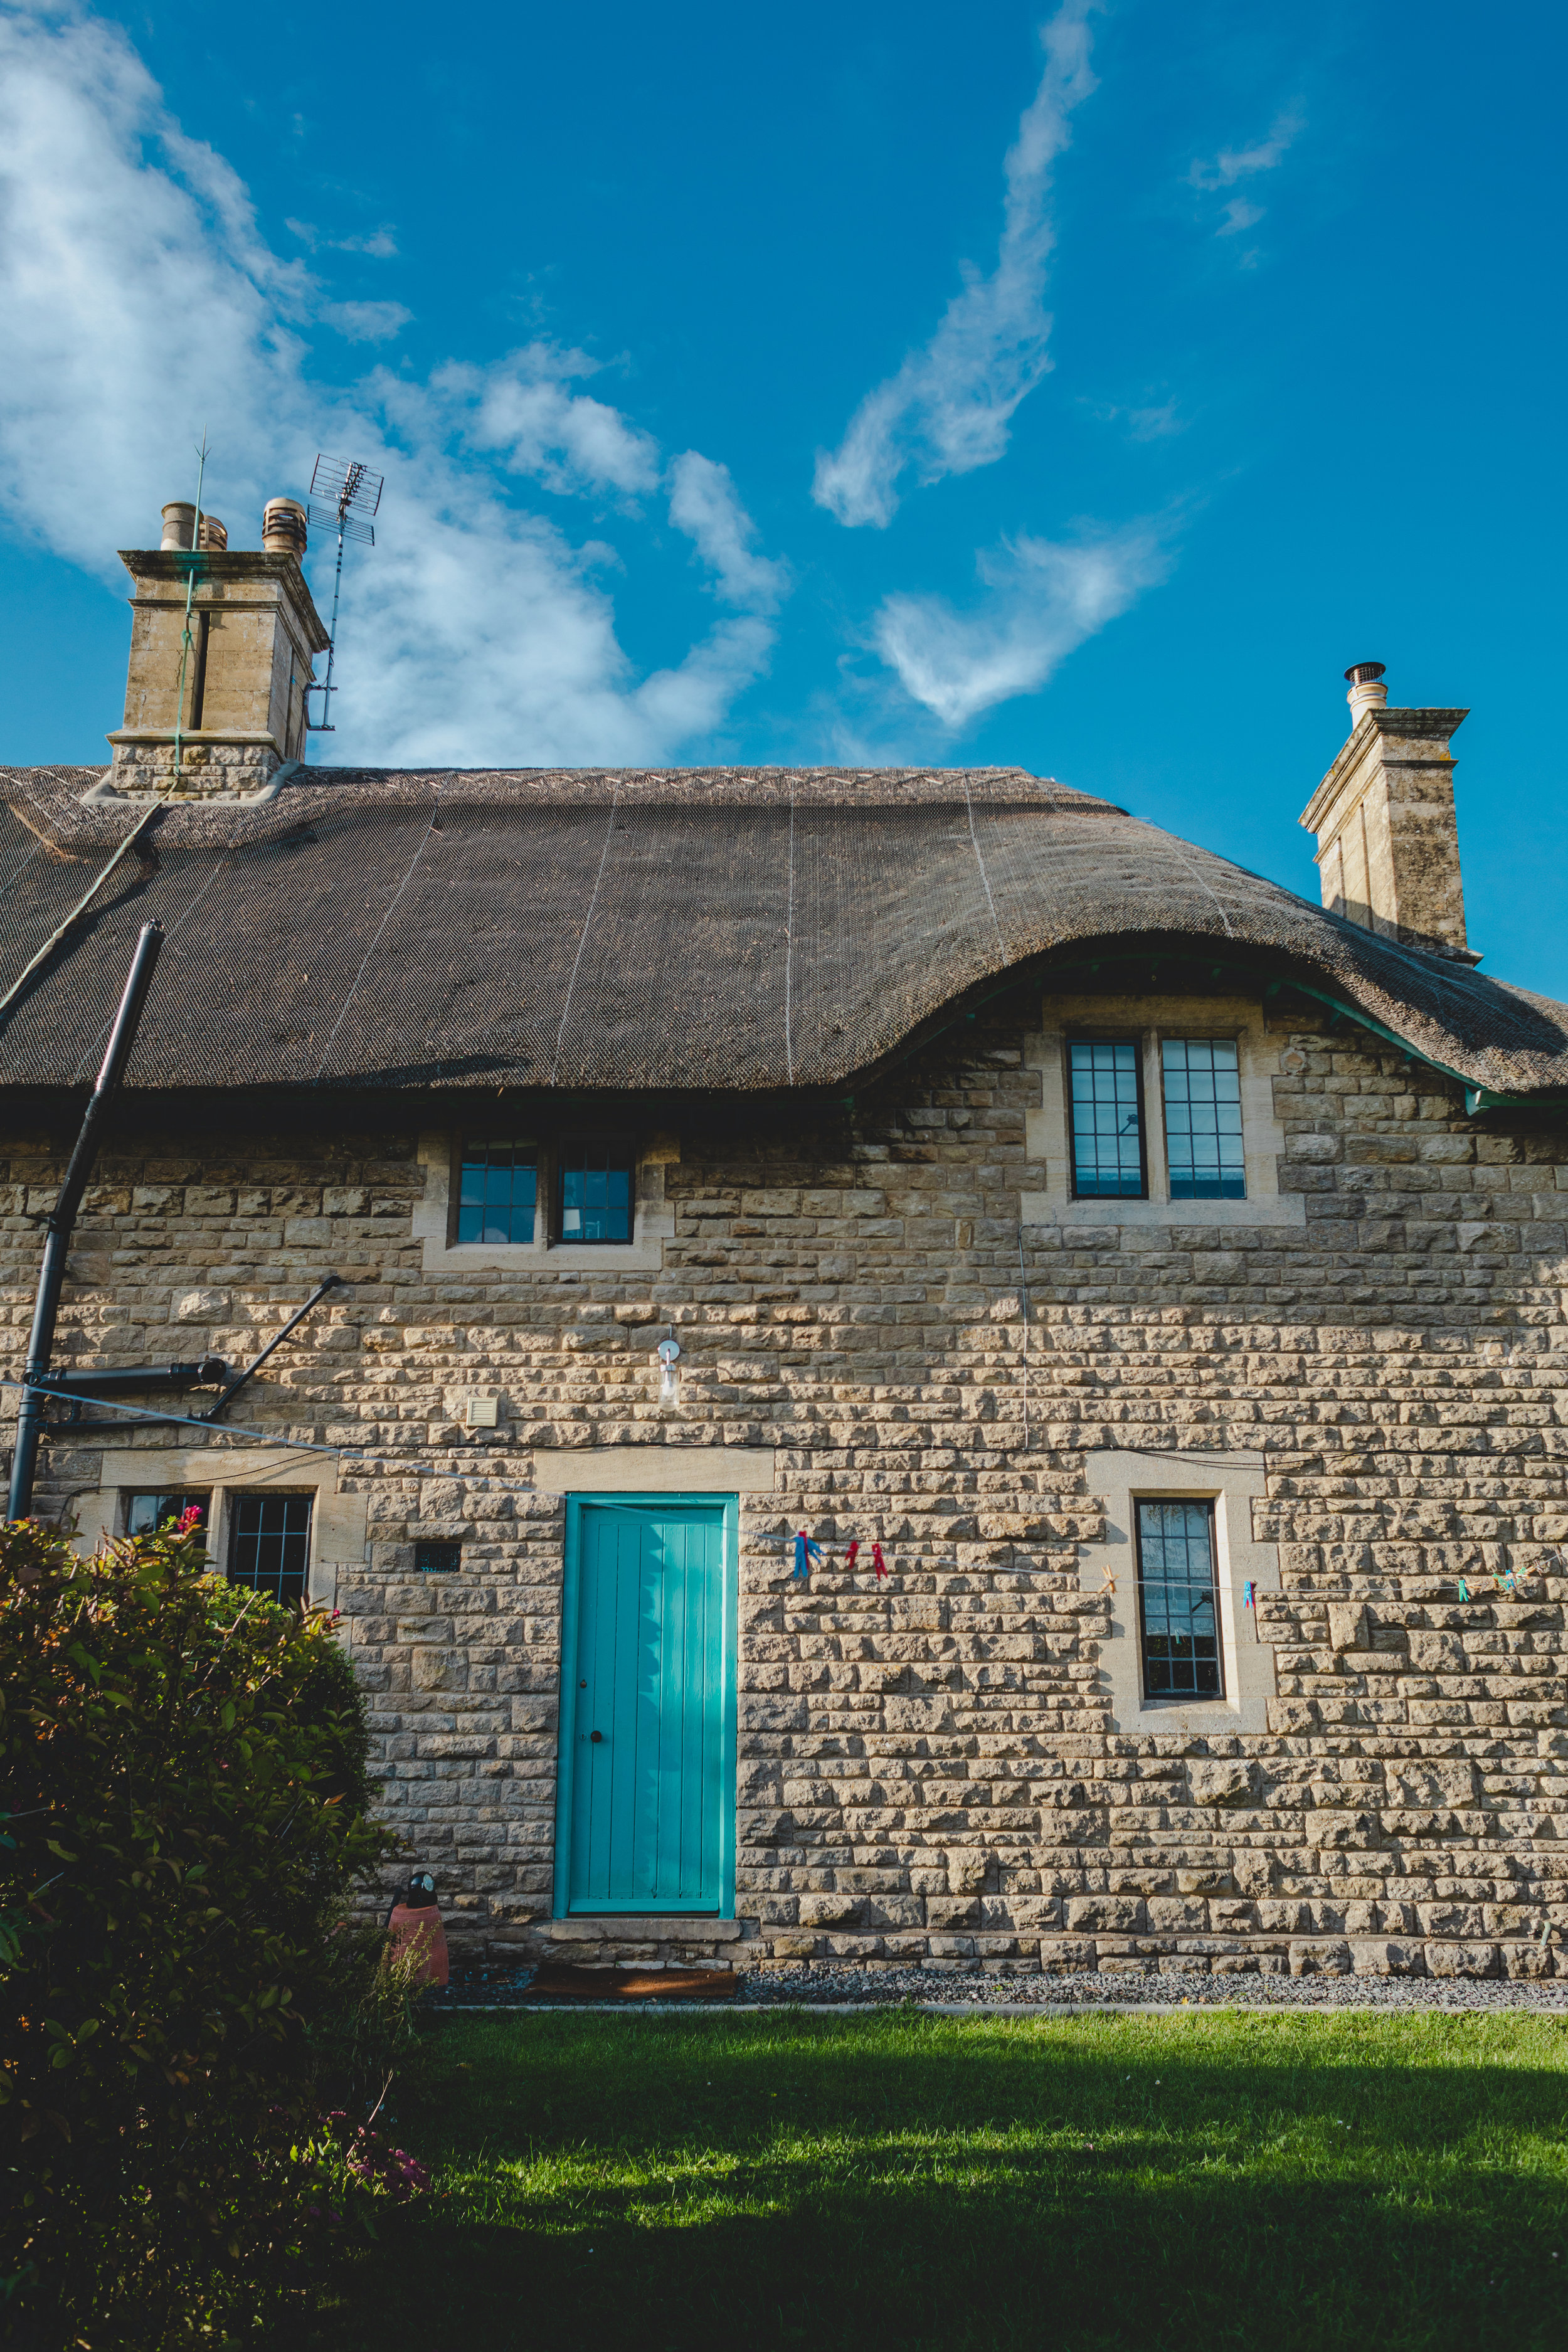 The dreamiest little cottage…